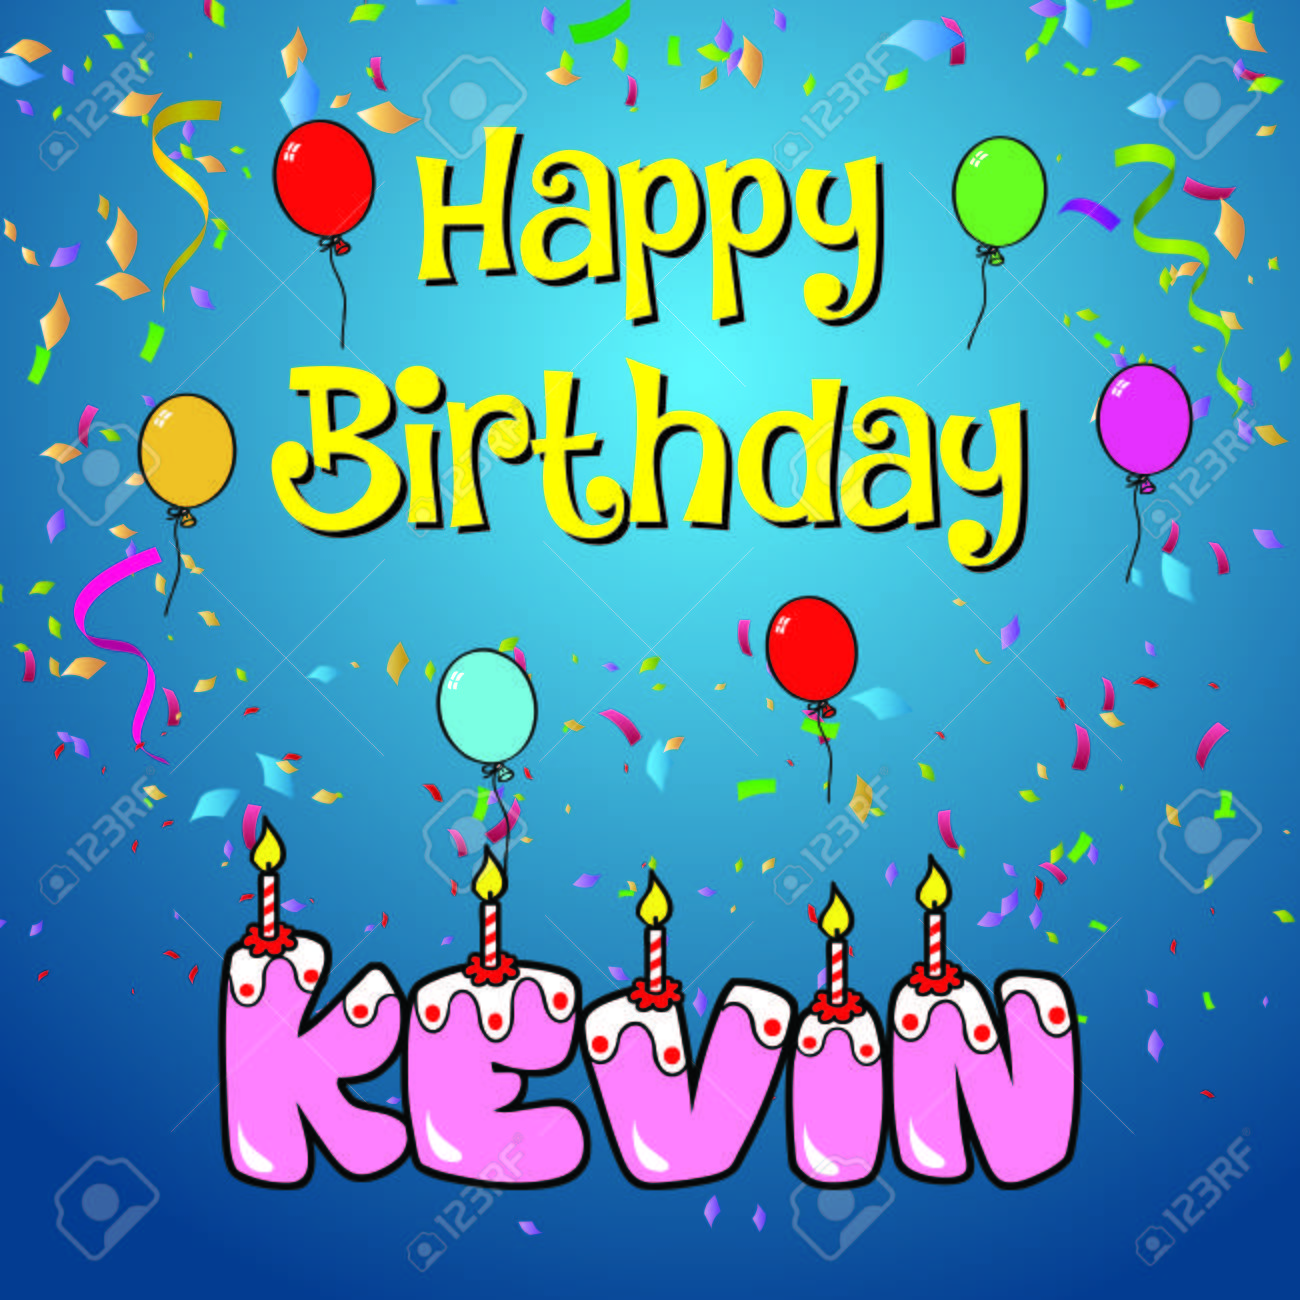 happy birthday kevin ; 75489861-happy-birthday-kevin